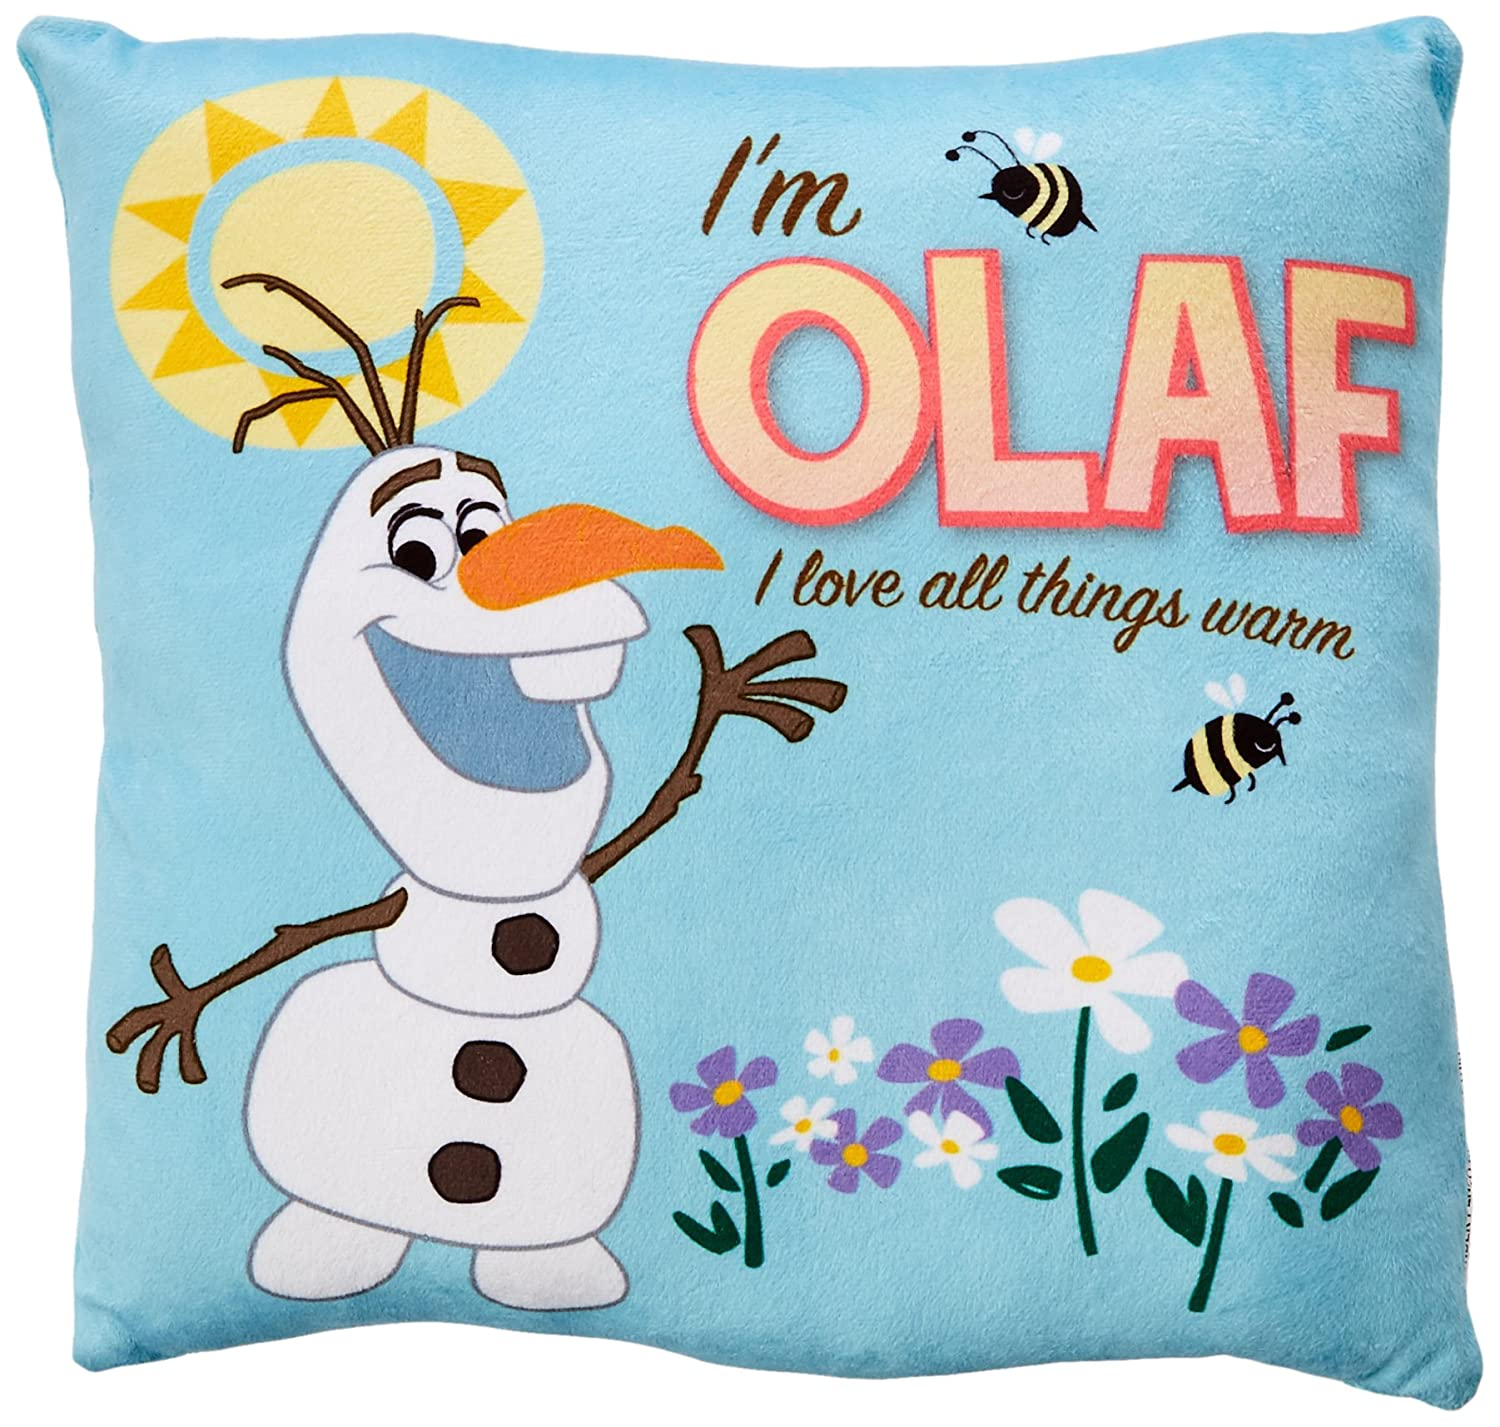 All Things Warm Disney Frozen Olaf Decorative Pillow